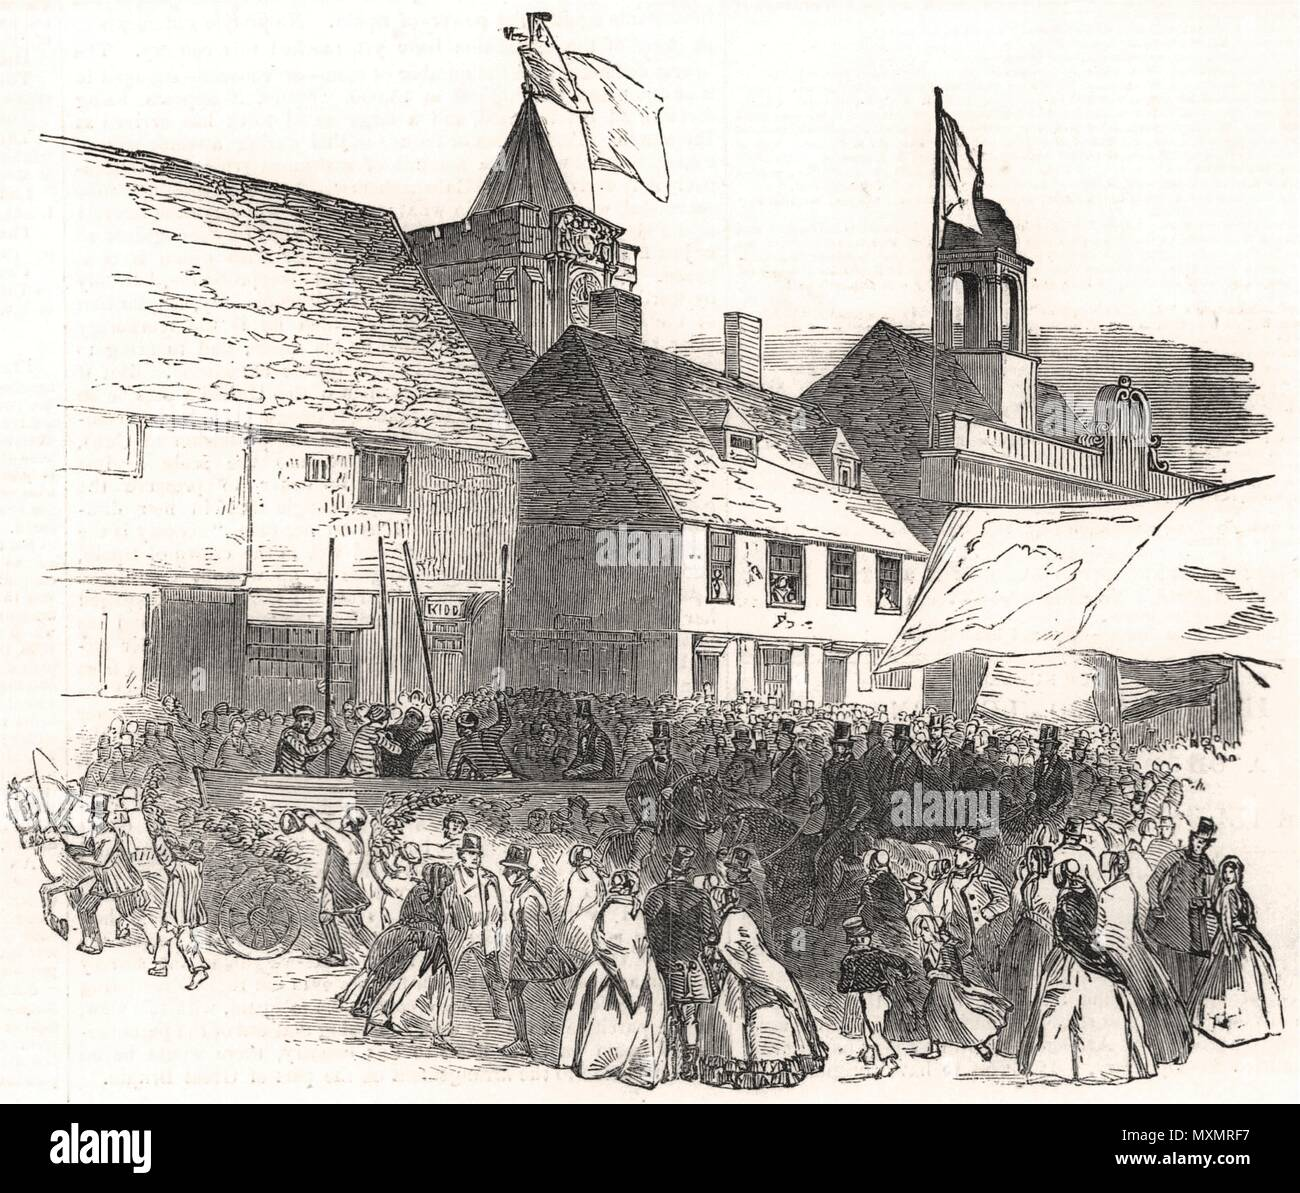 Lord Mayor of London procession near the church, at Rye. Sussex 1850. The Illustrated London News - Stock Image